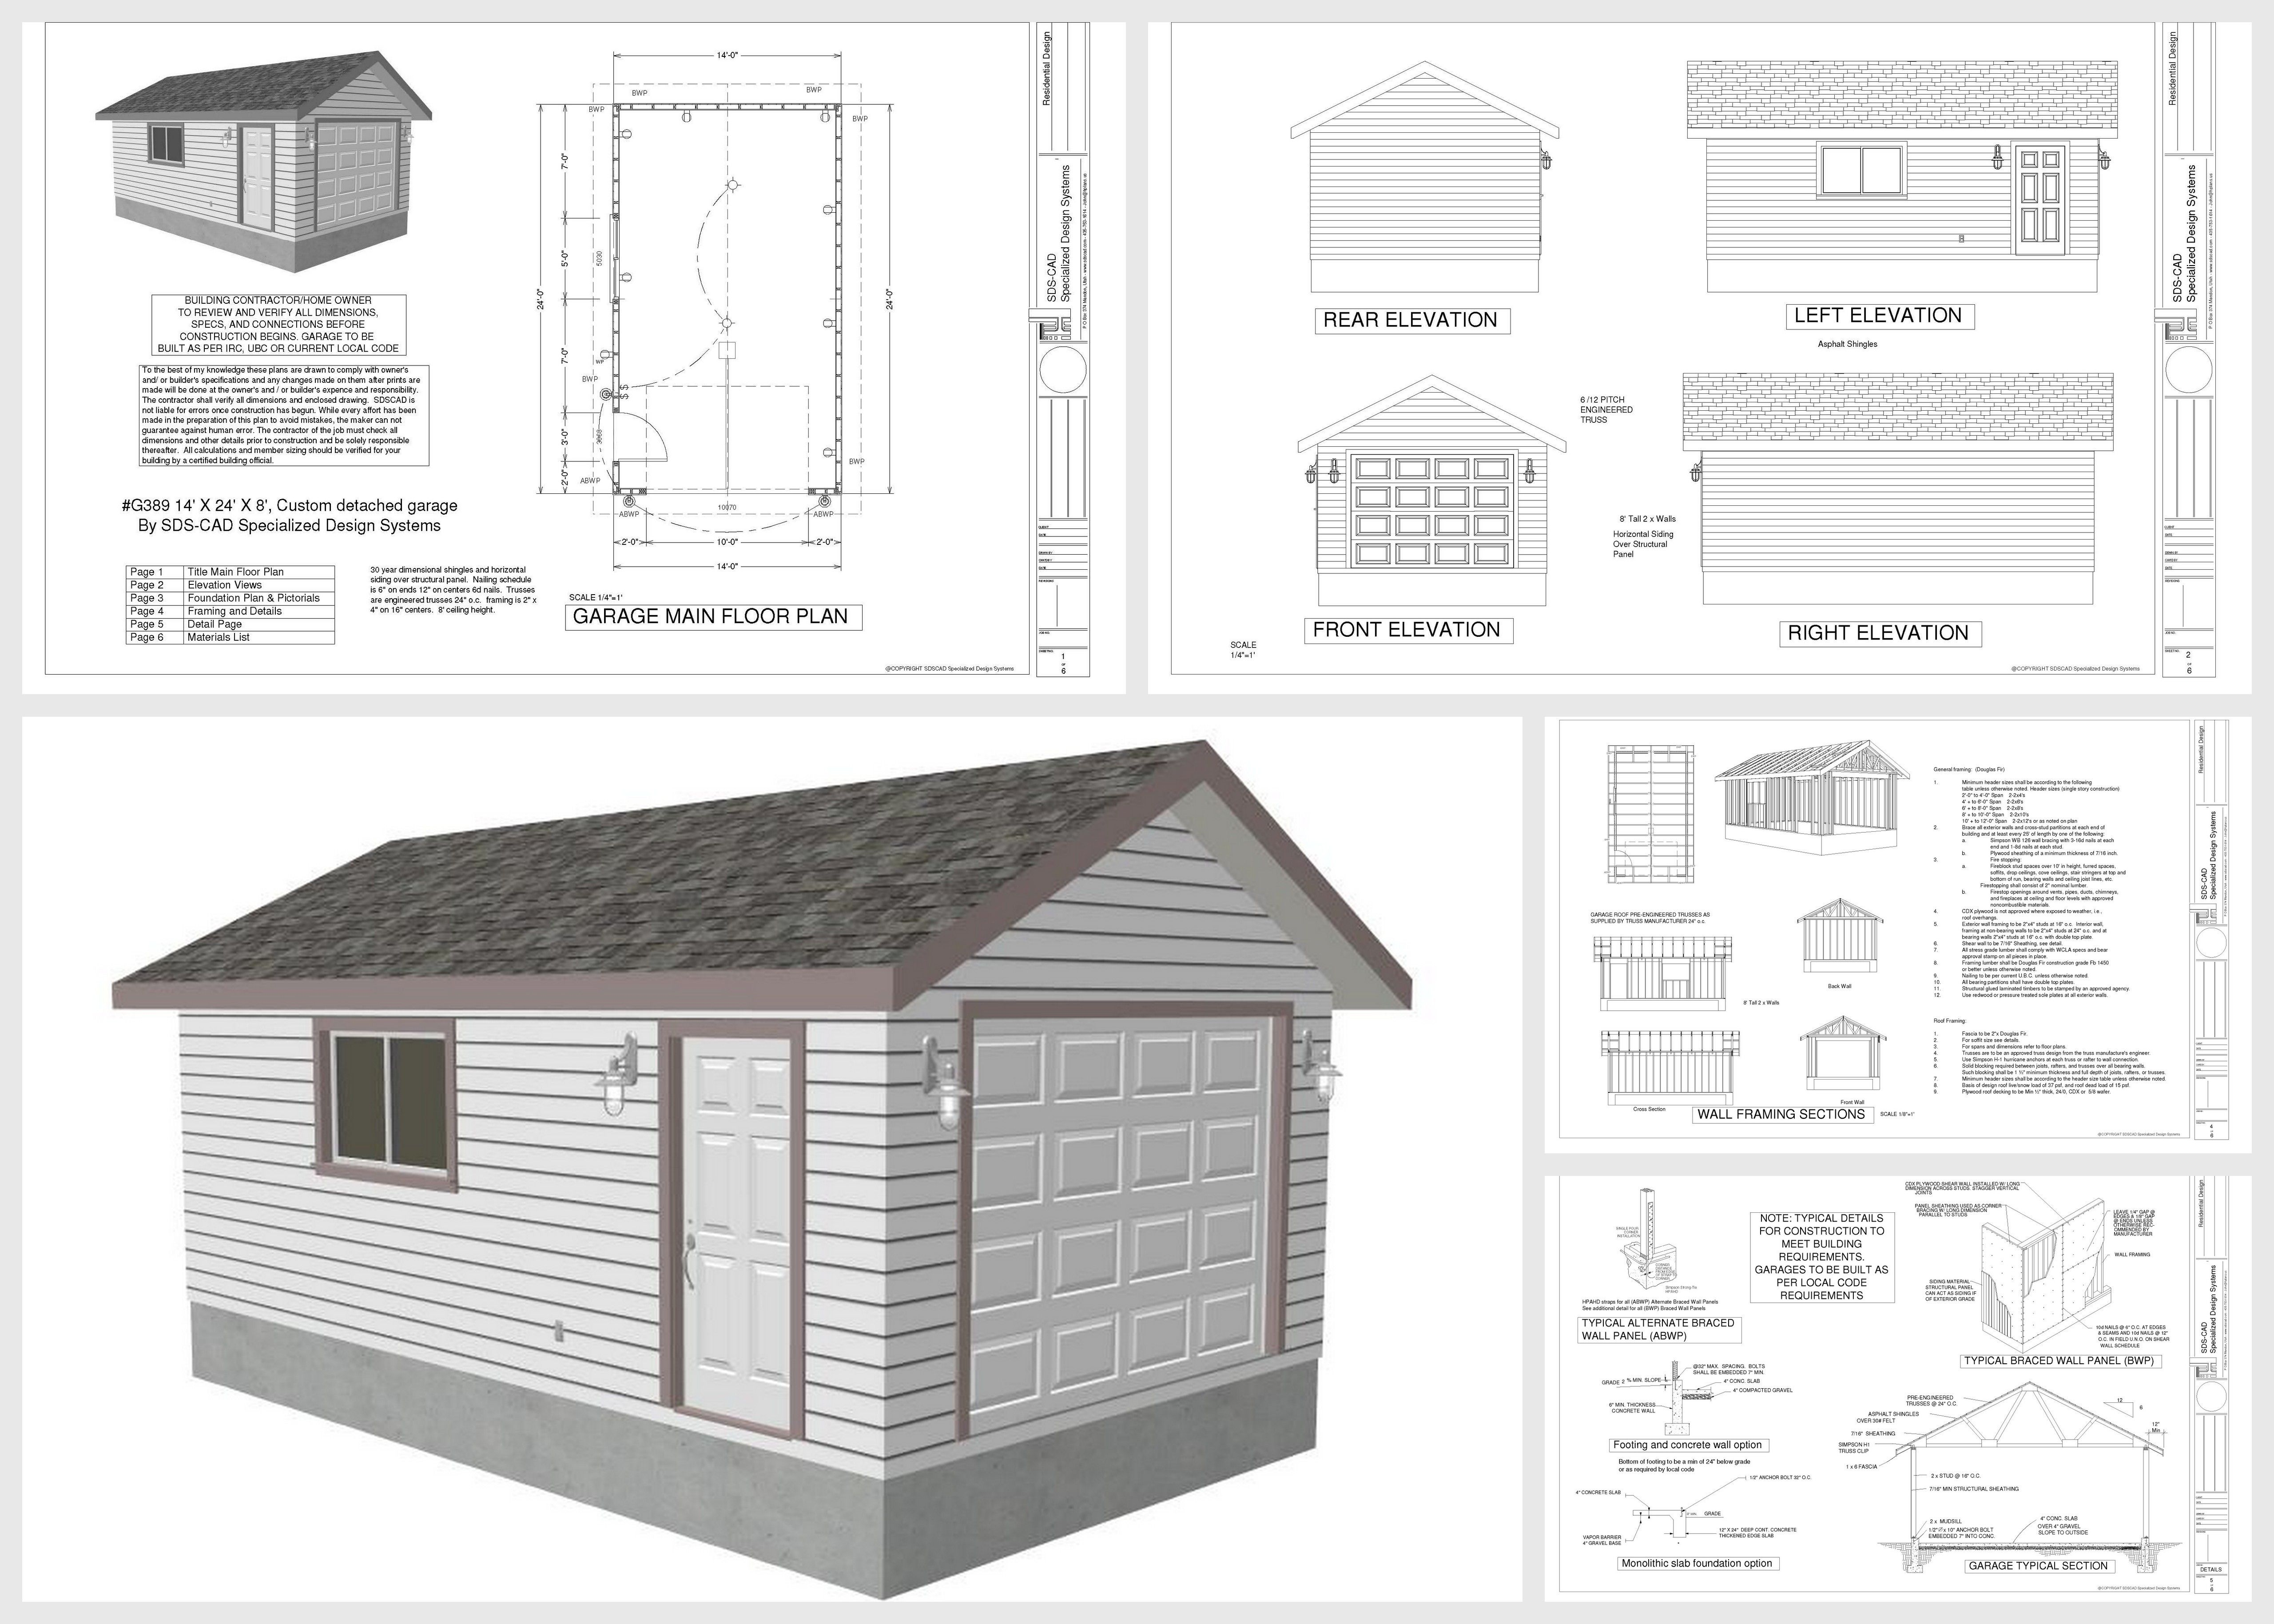 14 X 24 X 8 Garage Plans With Pdf And Dwg Garage Free